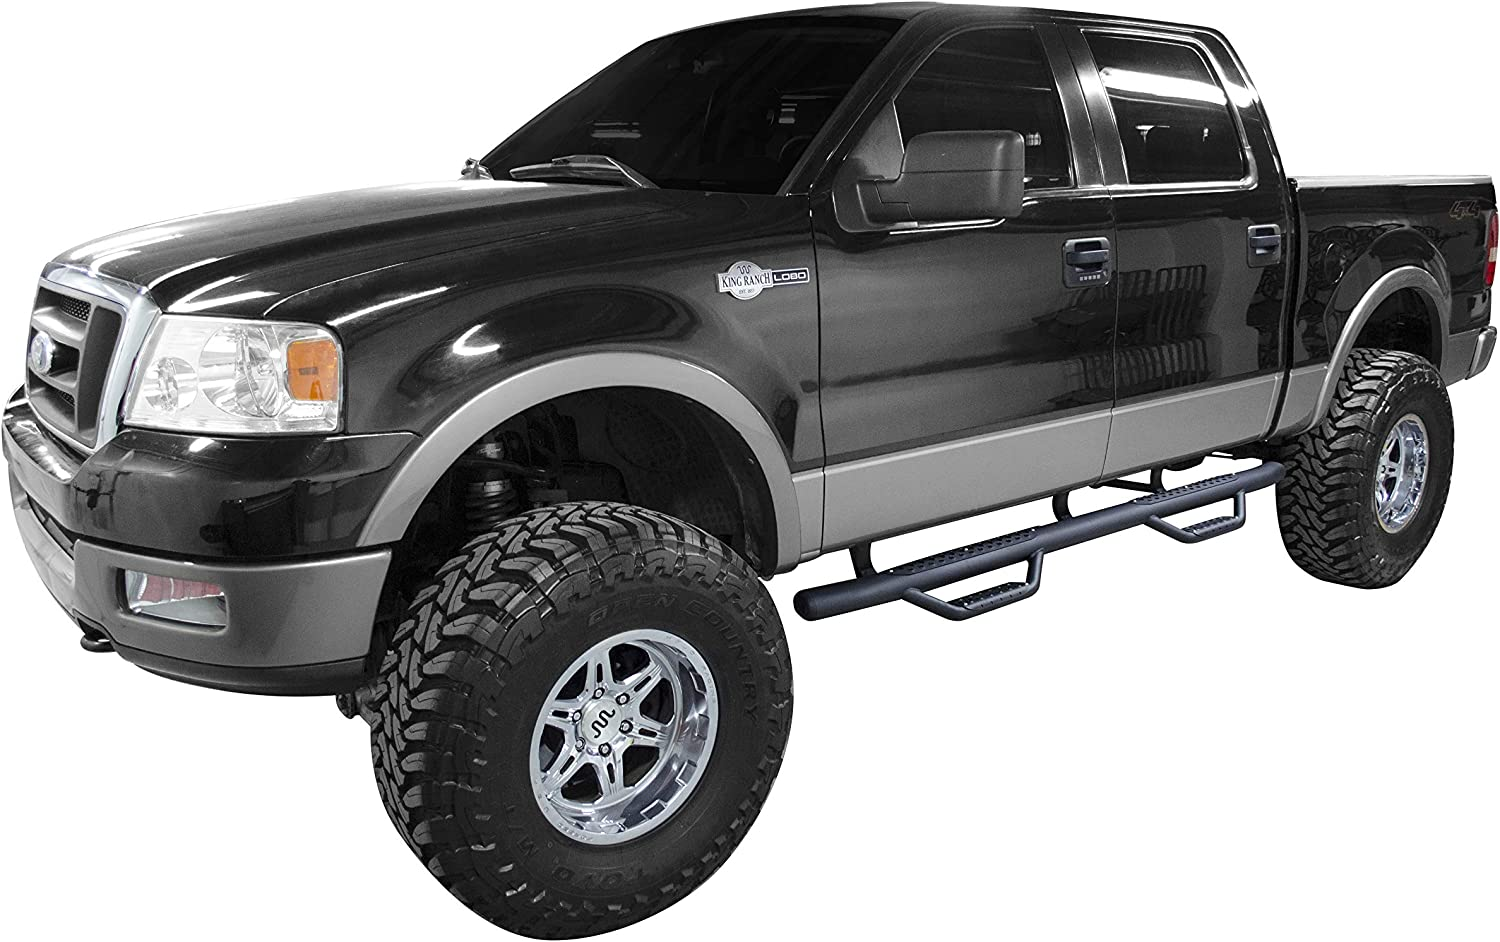 Super Crew Cab Length, Pair Go Rhino D24155T Black Textured Dominator D2 Sidestep for Ford